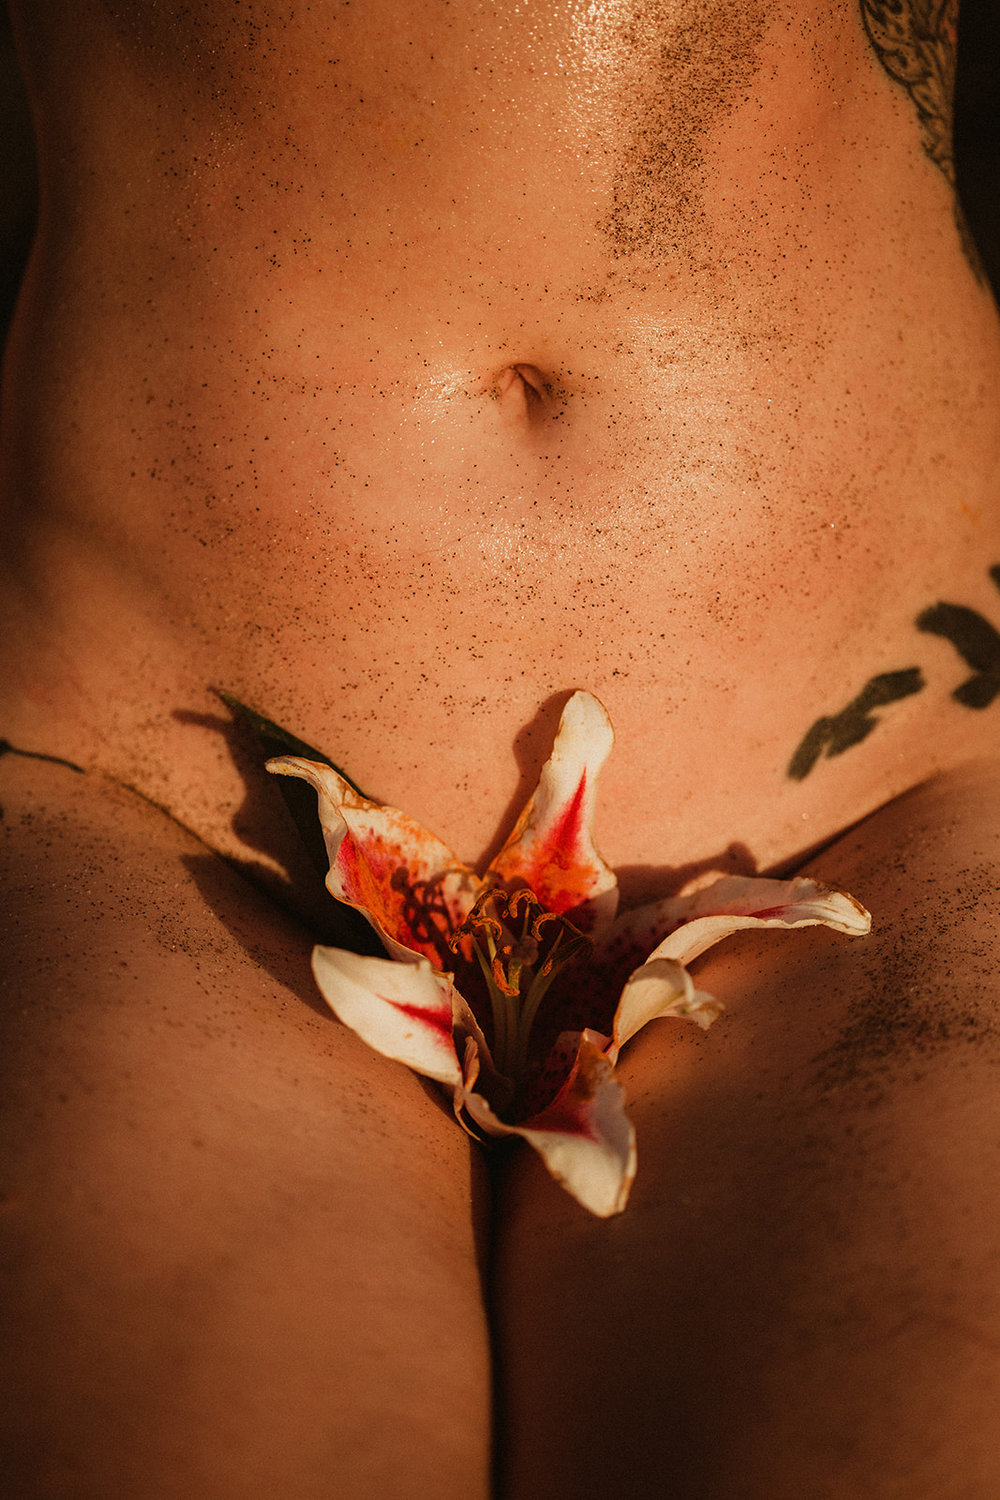 Connect deeply with the creative & life-affirming power of pleasure. -